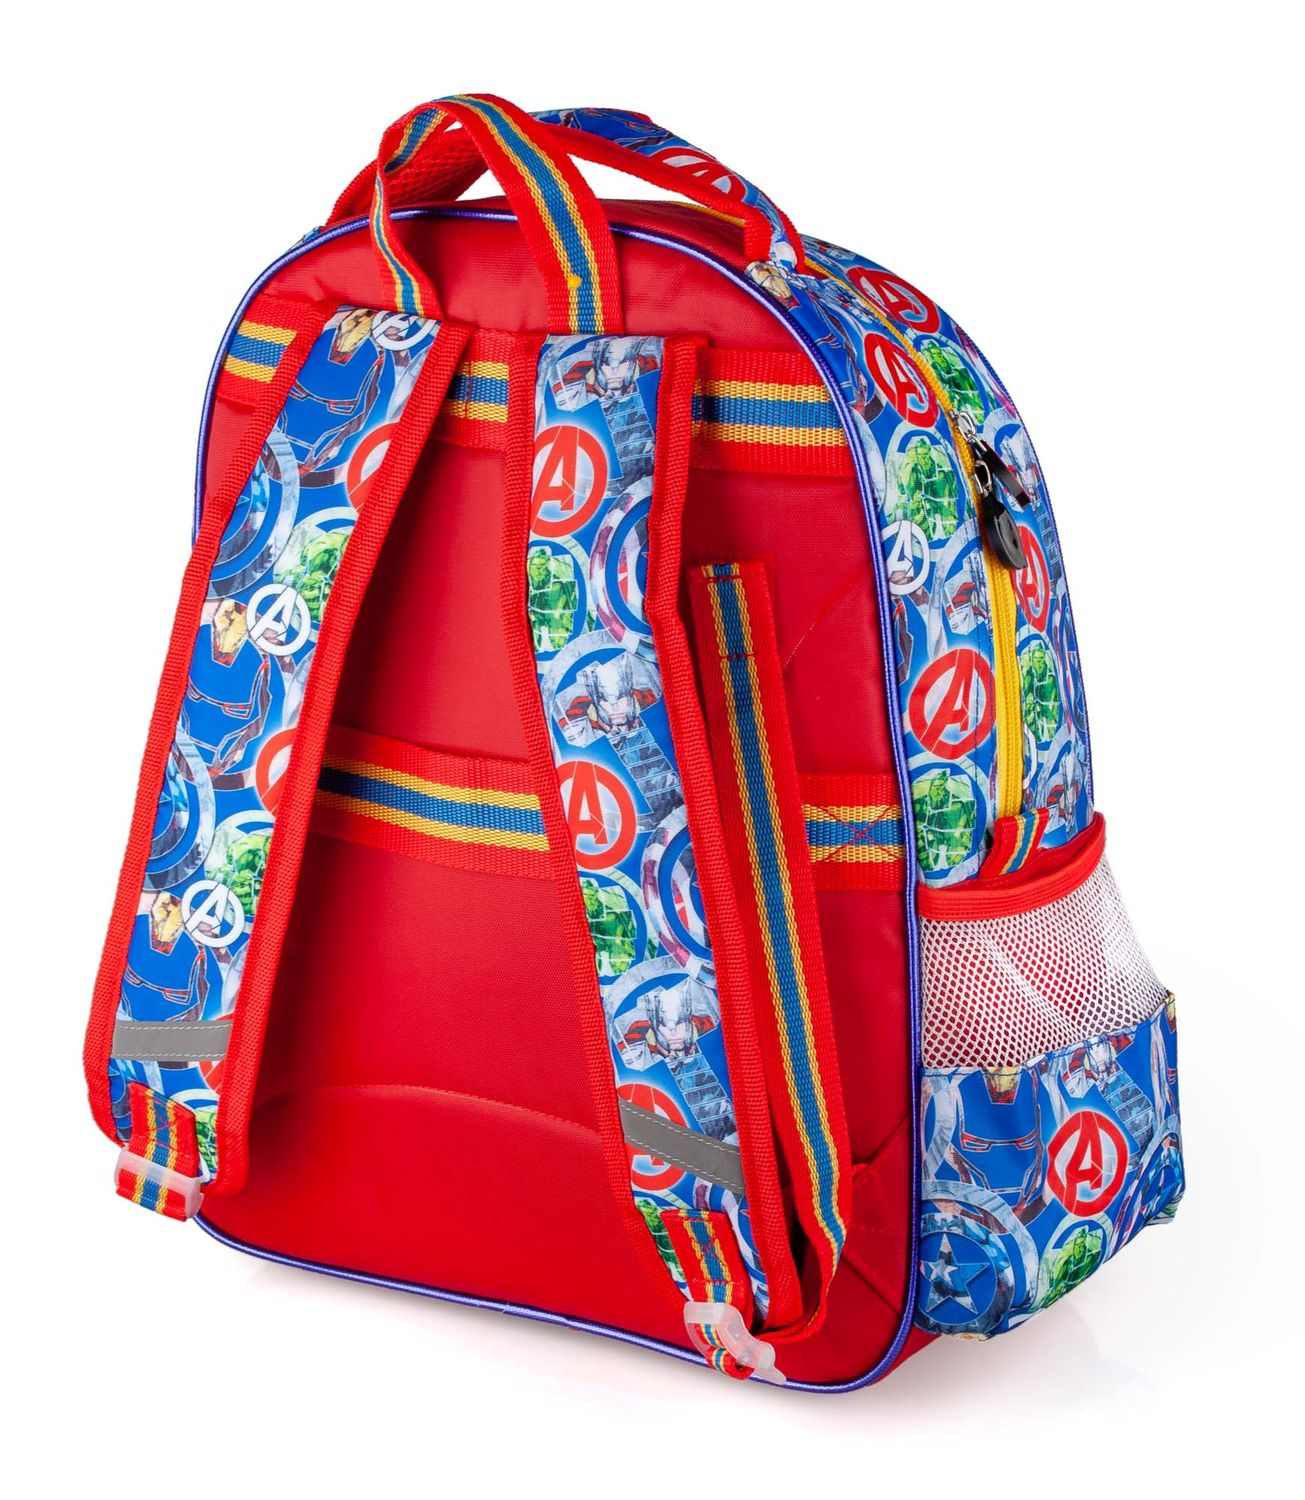 Backpack Avengers Large – image 2